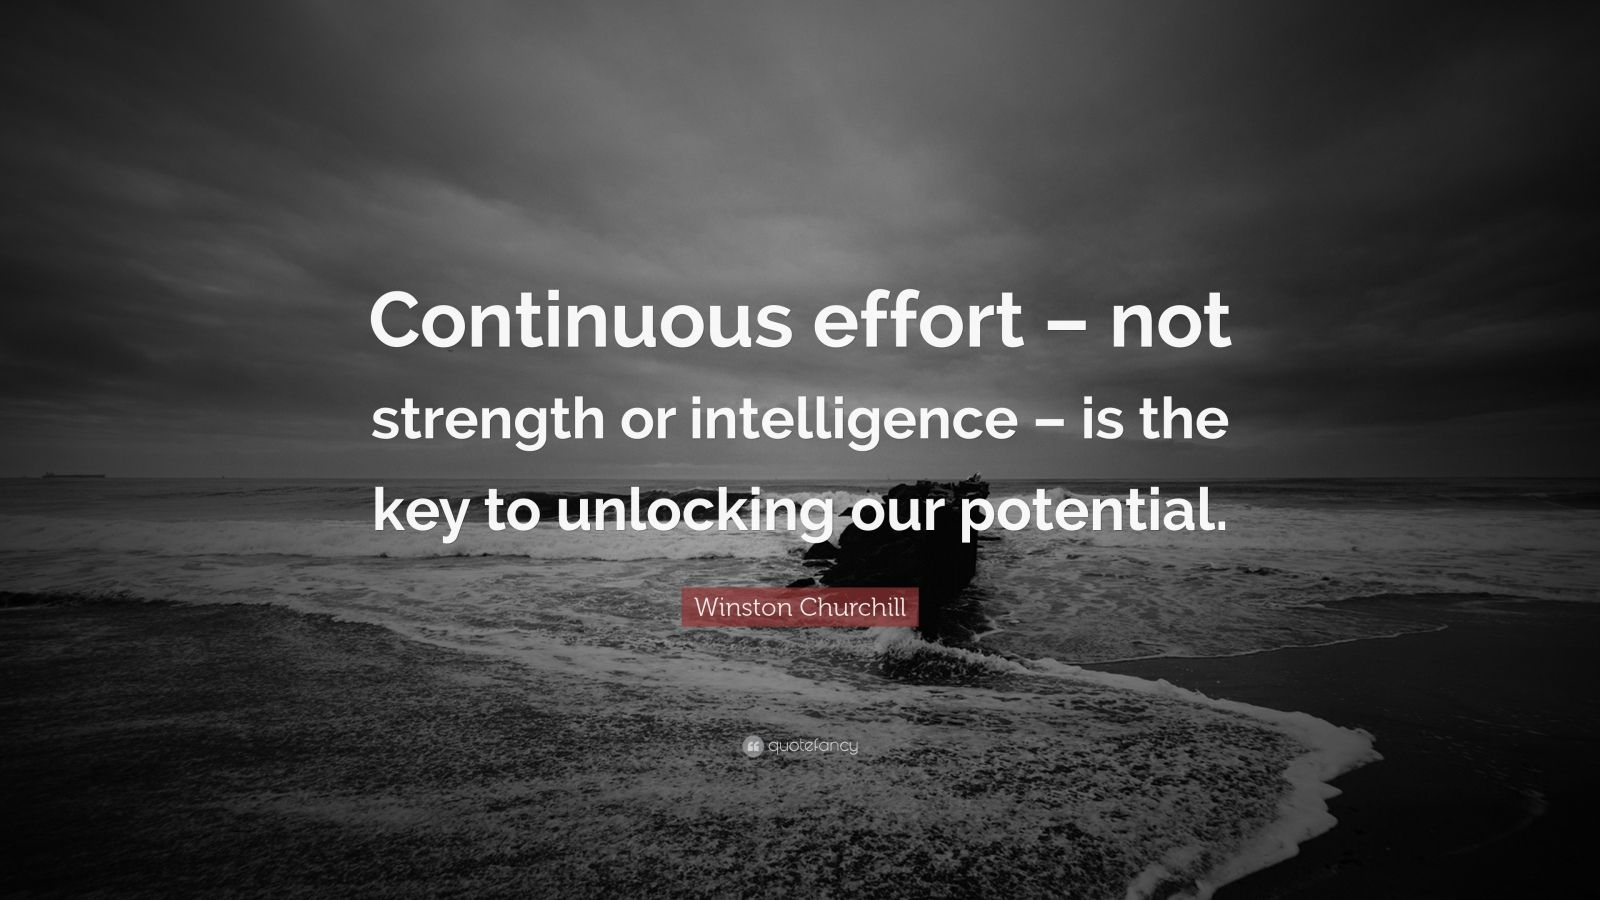 Beautiful Wallpapers With Quotes Of Life Winston Churchill Quote Continuous Effort Not Strength